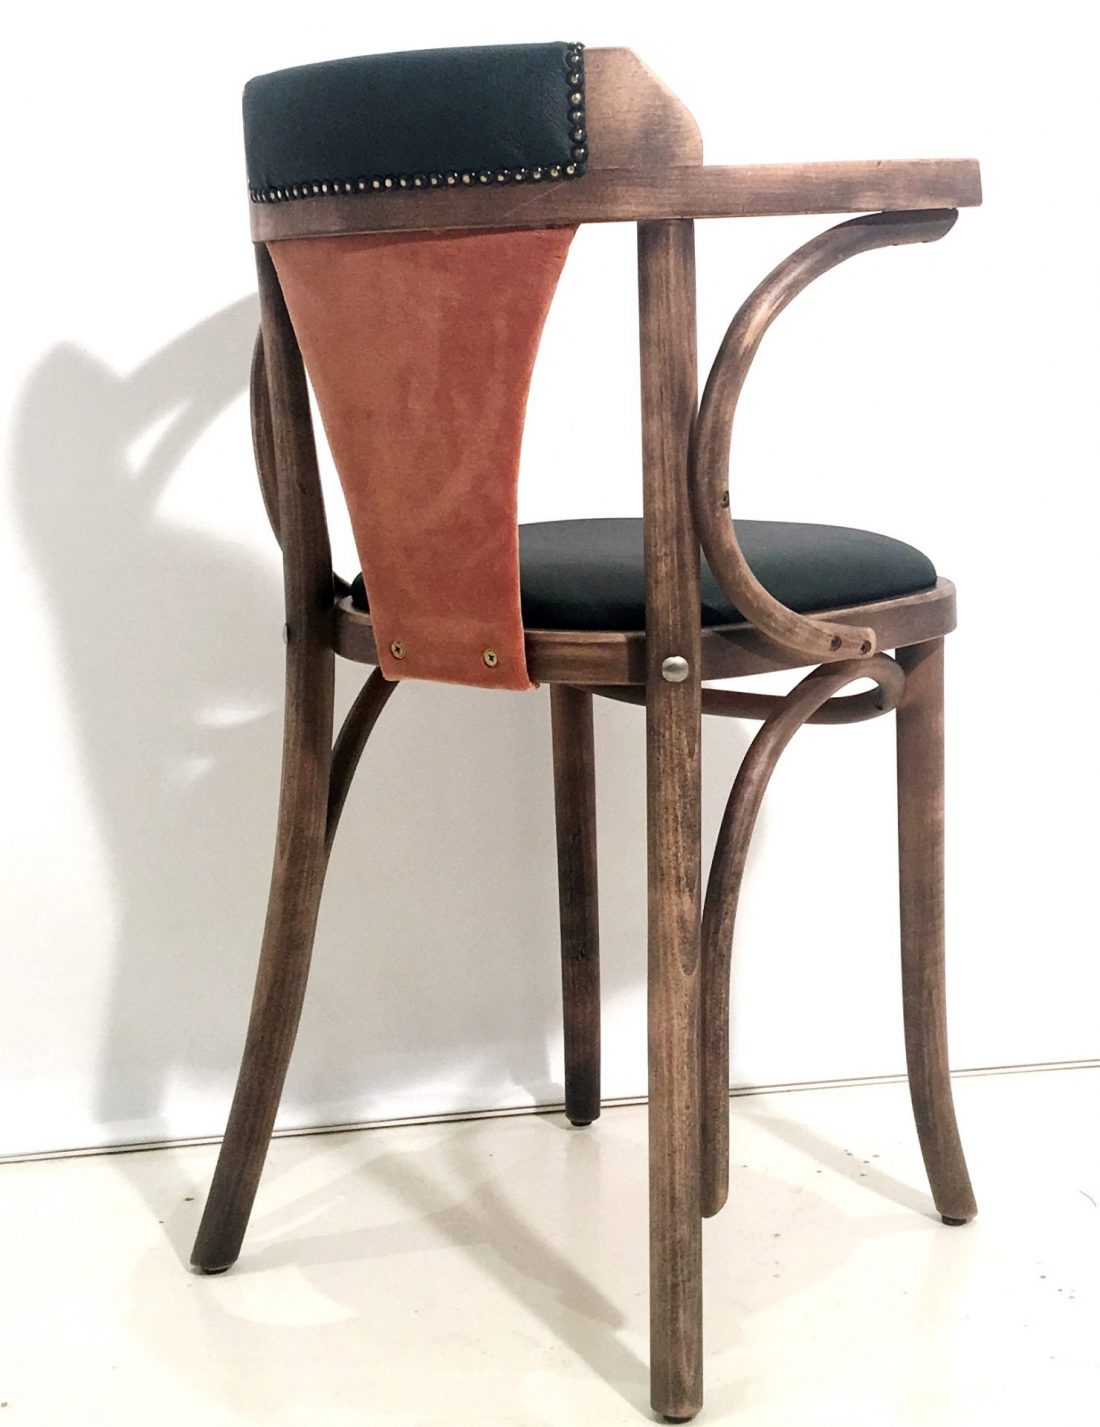 distressed, bentwood, fanback, upholstered